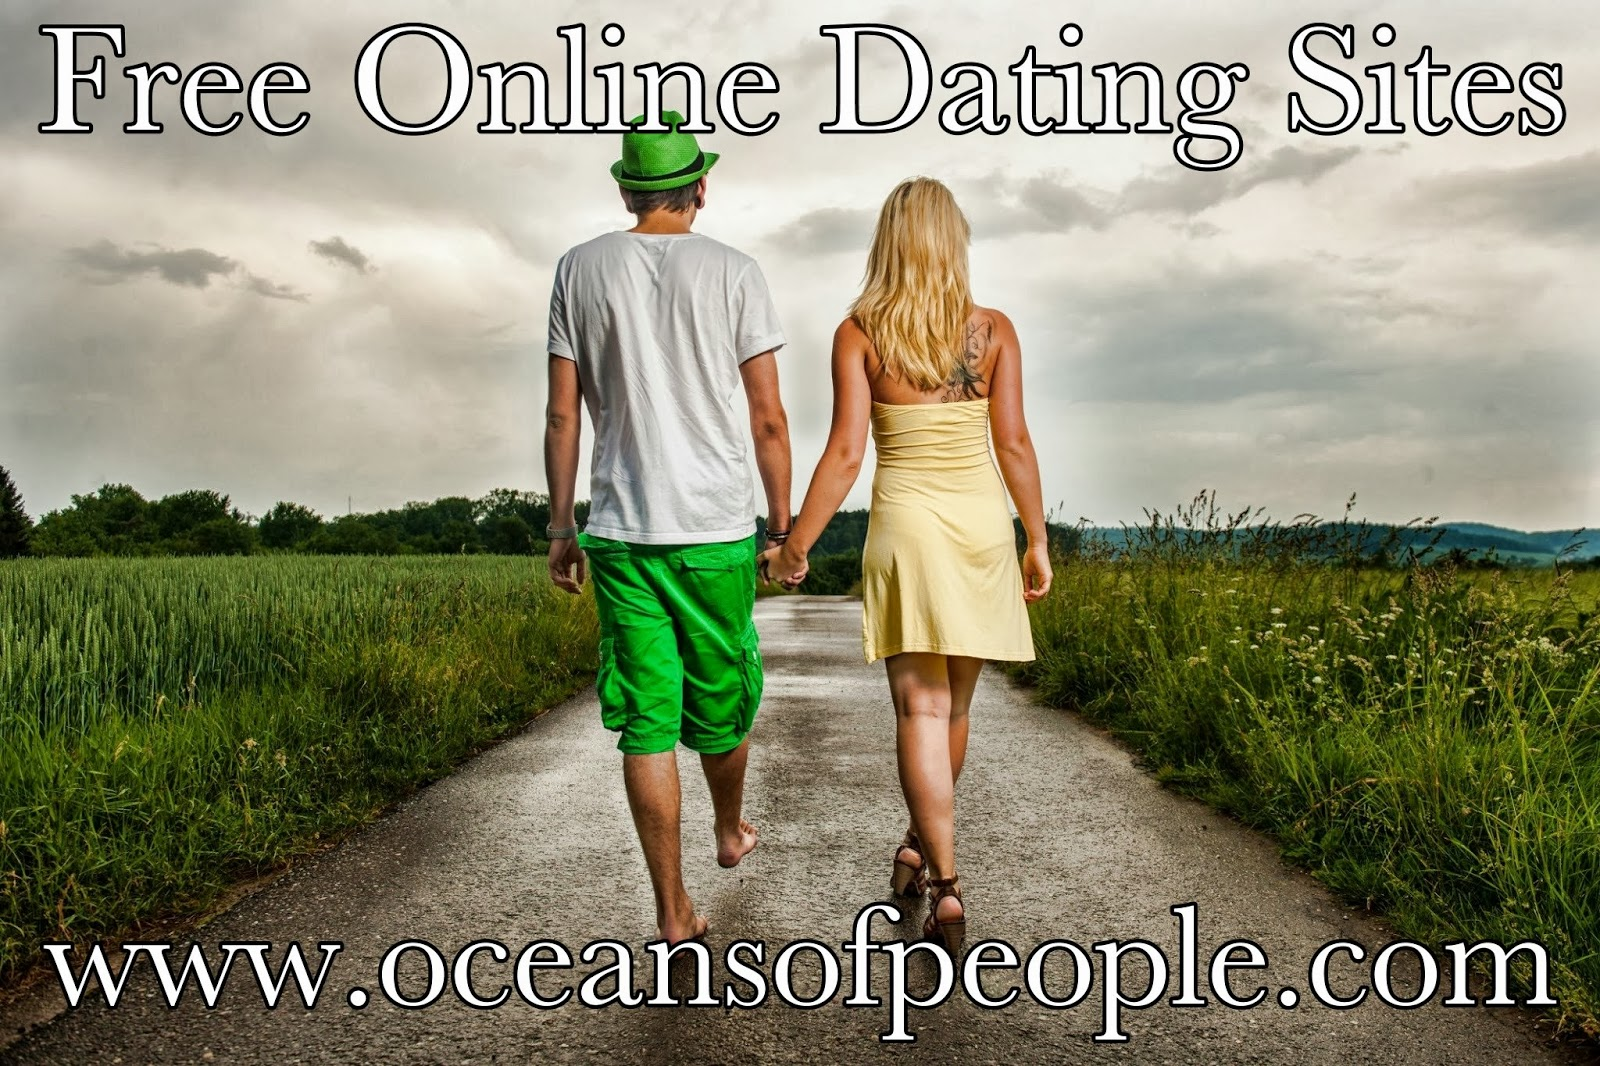 Free dating sites in minneapolis